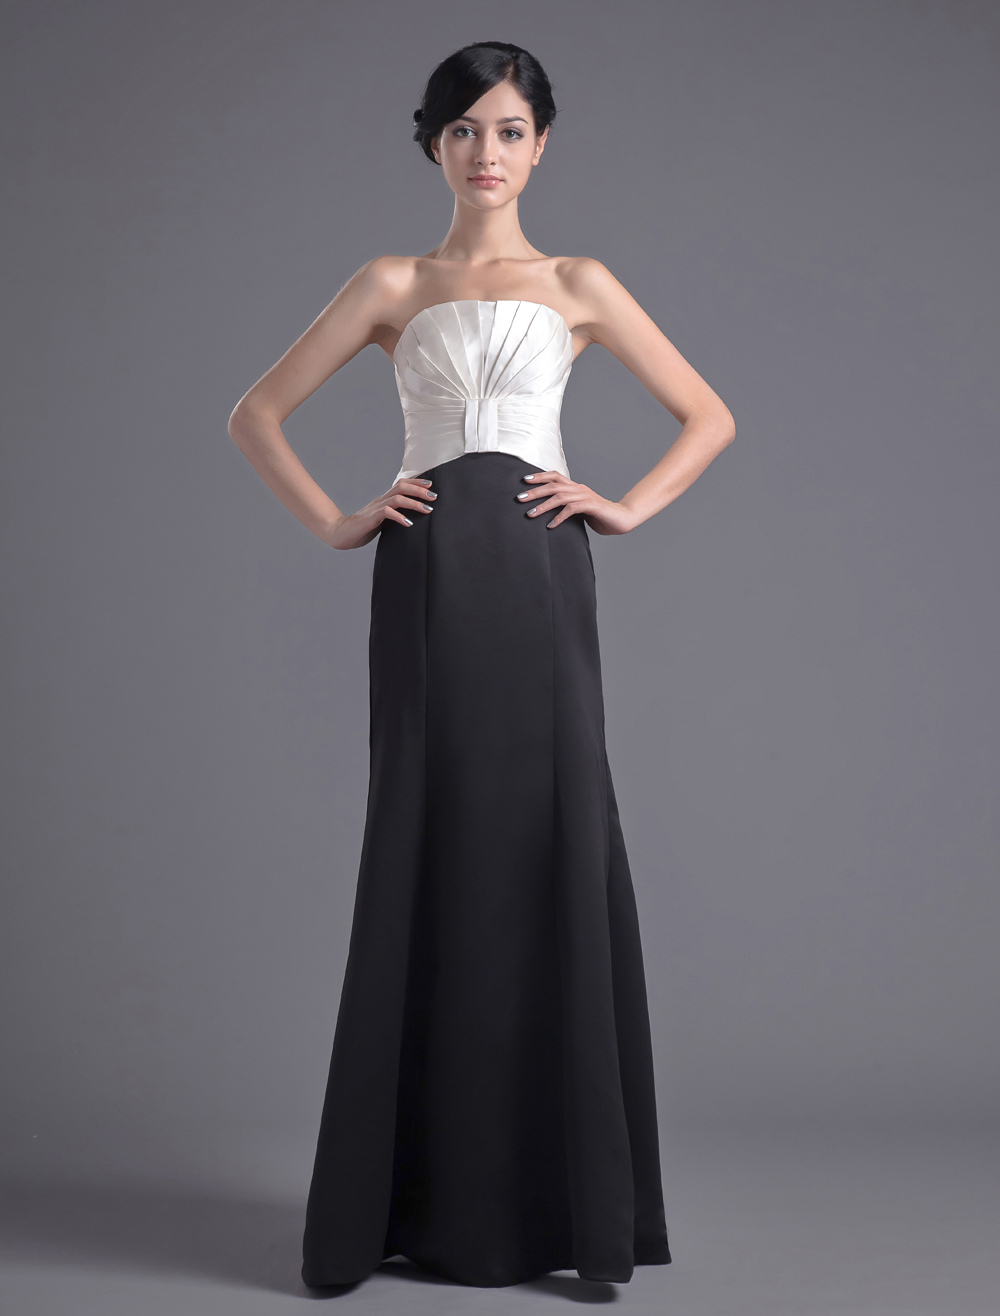 Elegant Satin Strapless Fashion Evening Dress